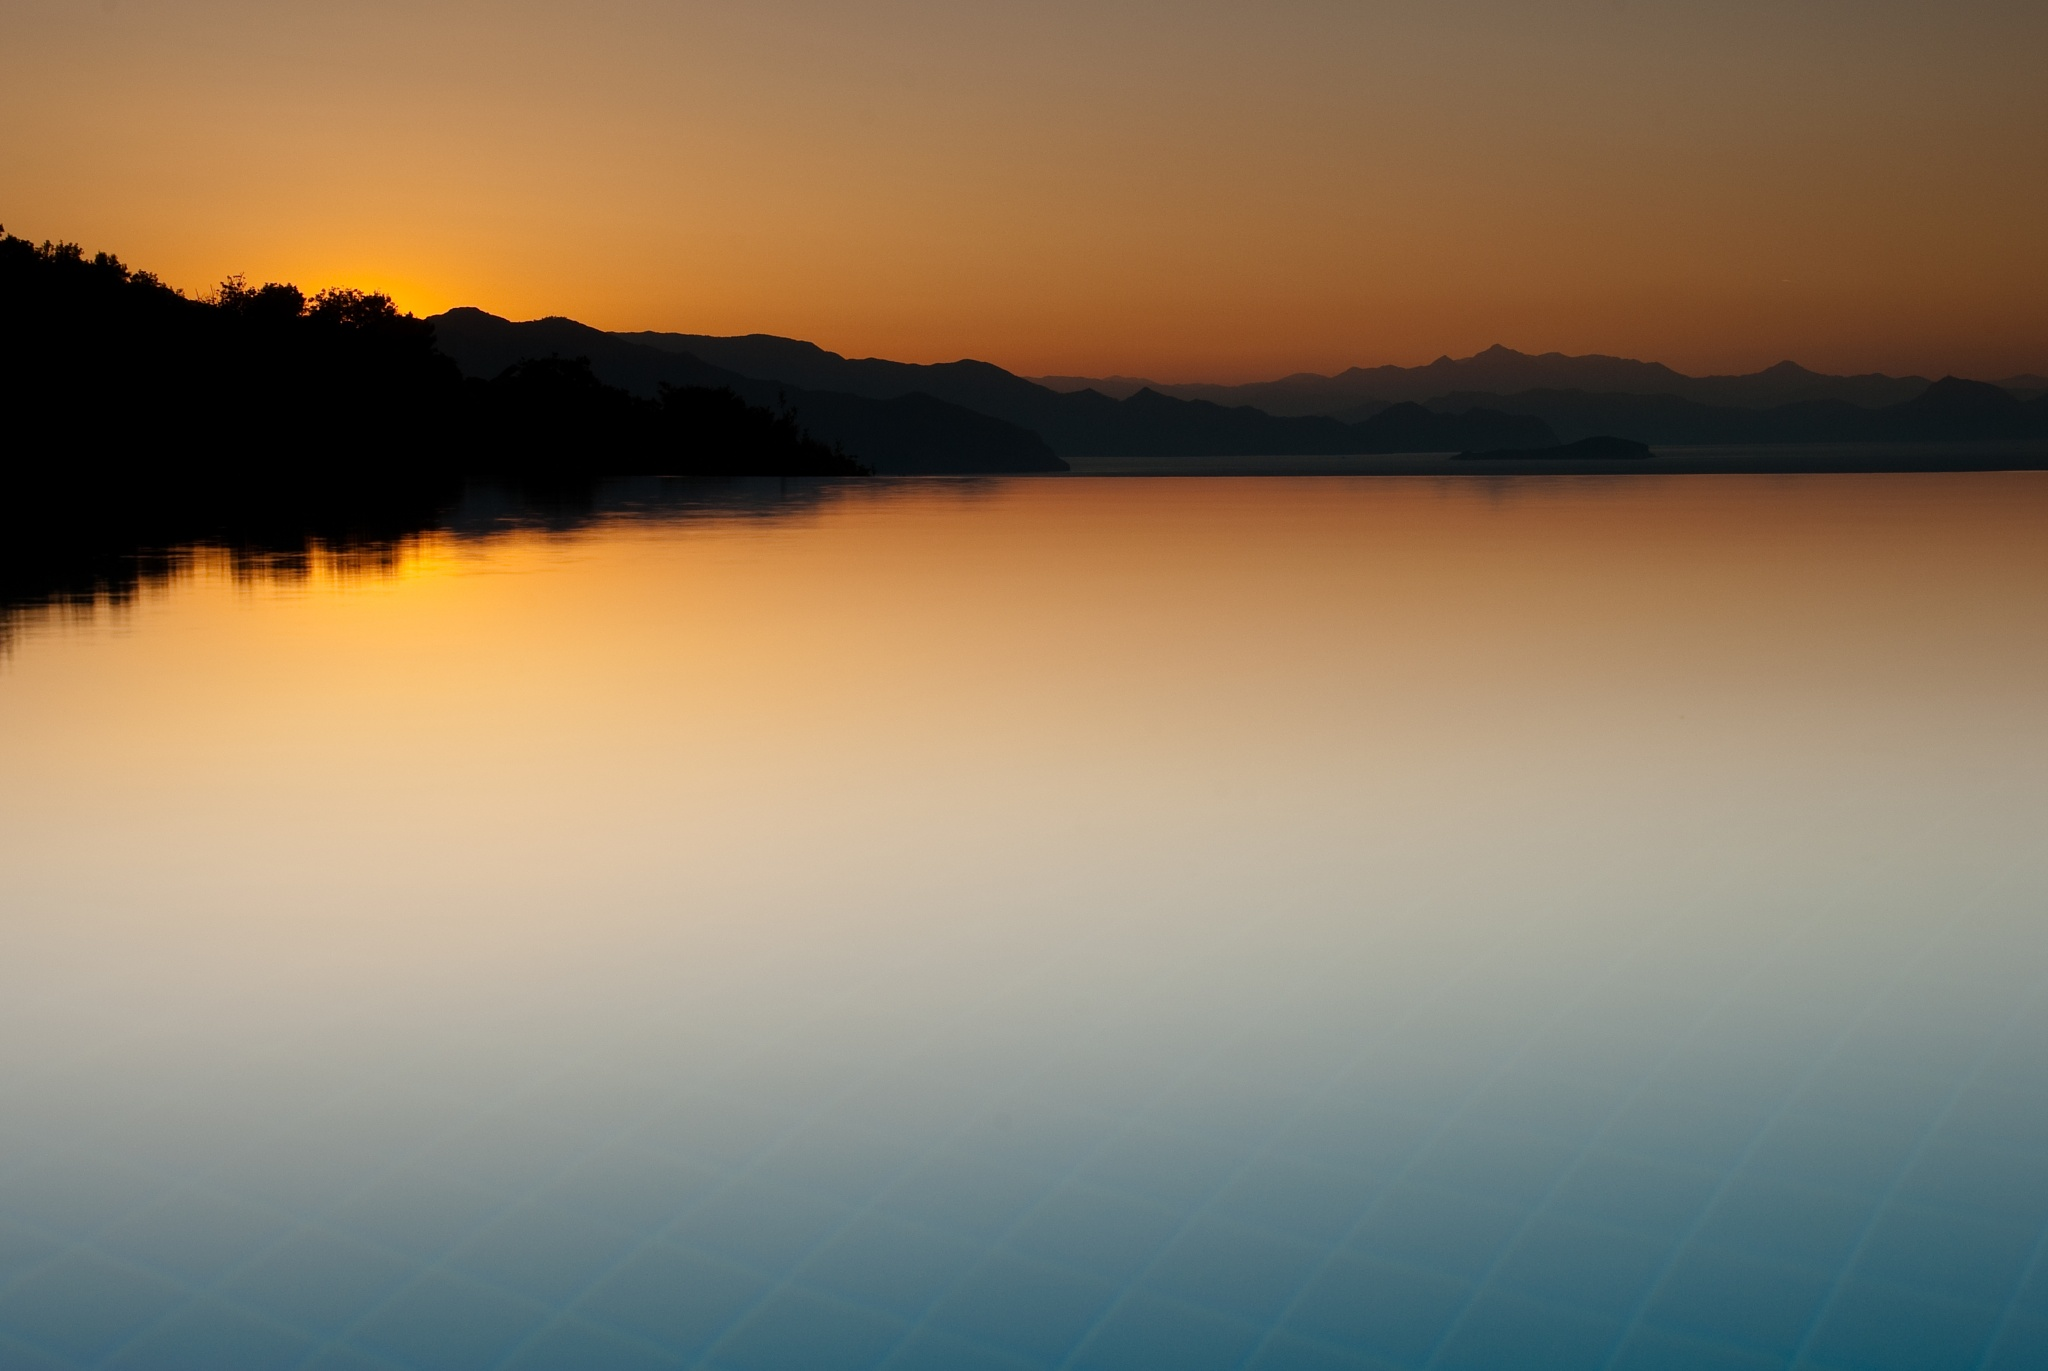 Infinity Pool, Turkey by D Green